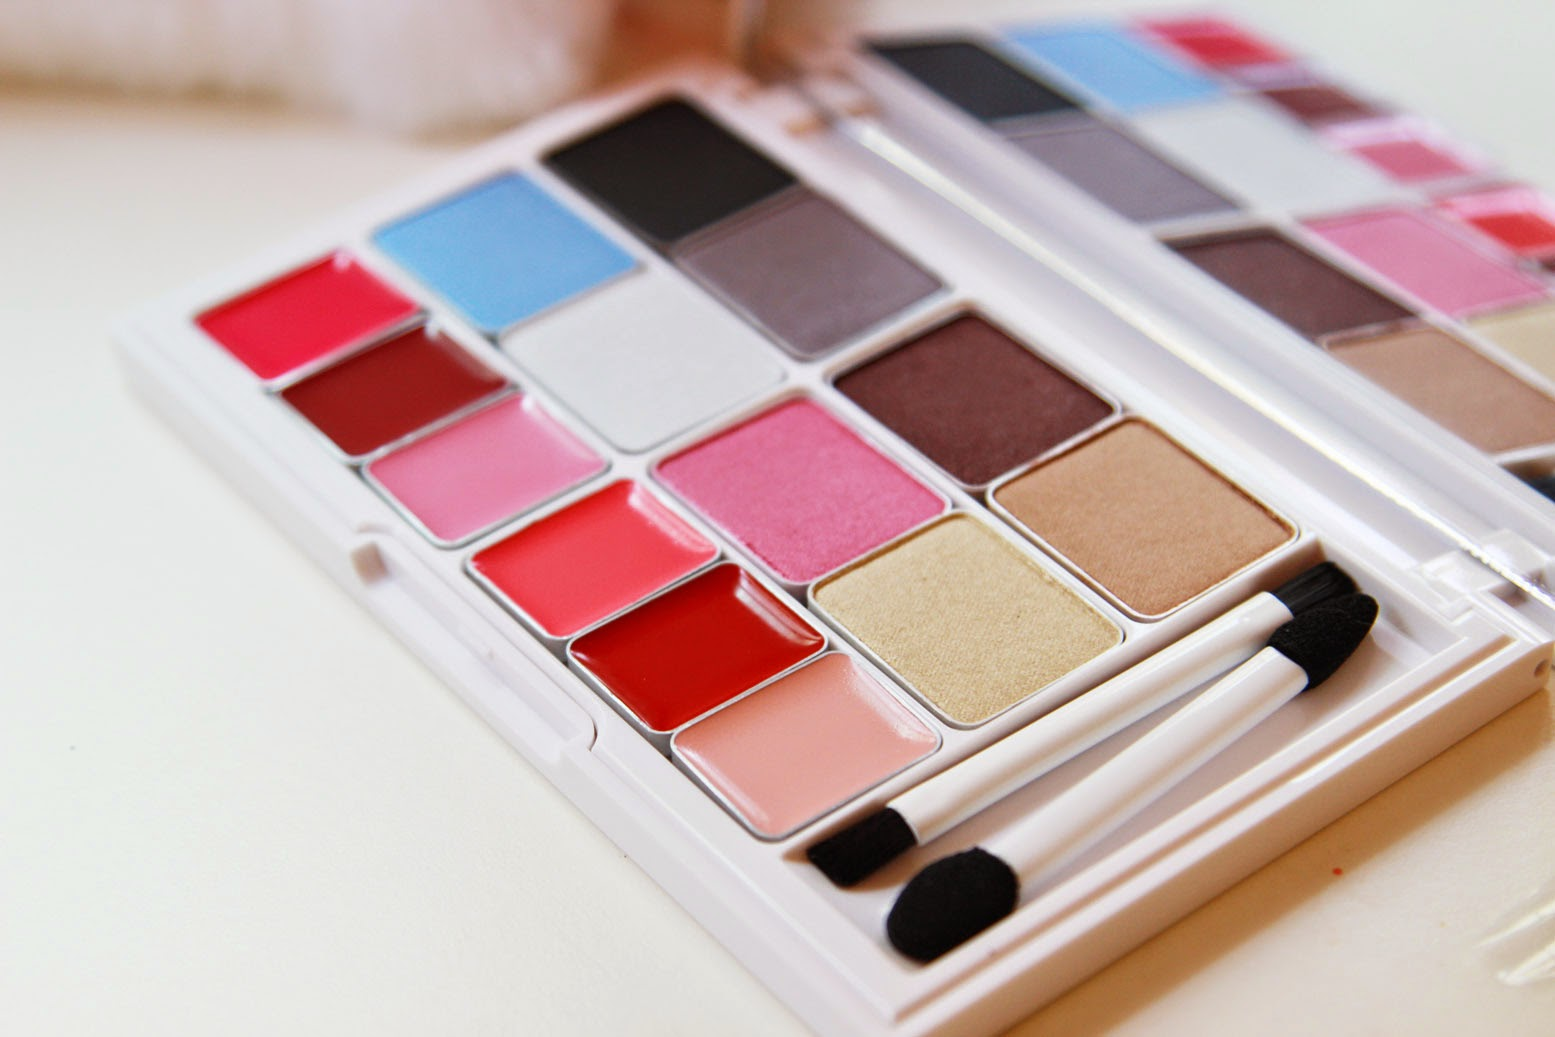 Shu Uemura Shupette Has-It-All Eyes and Lip Palette